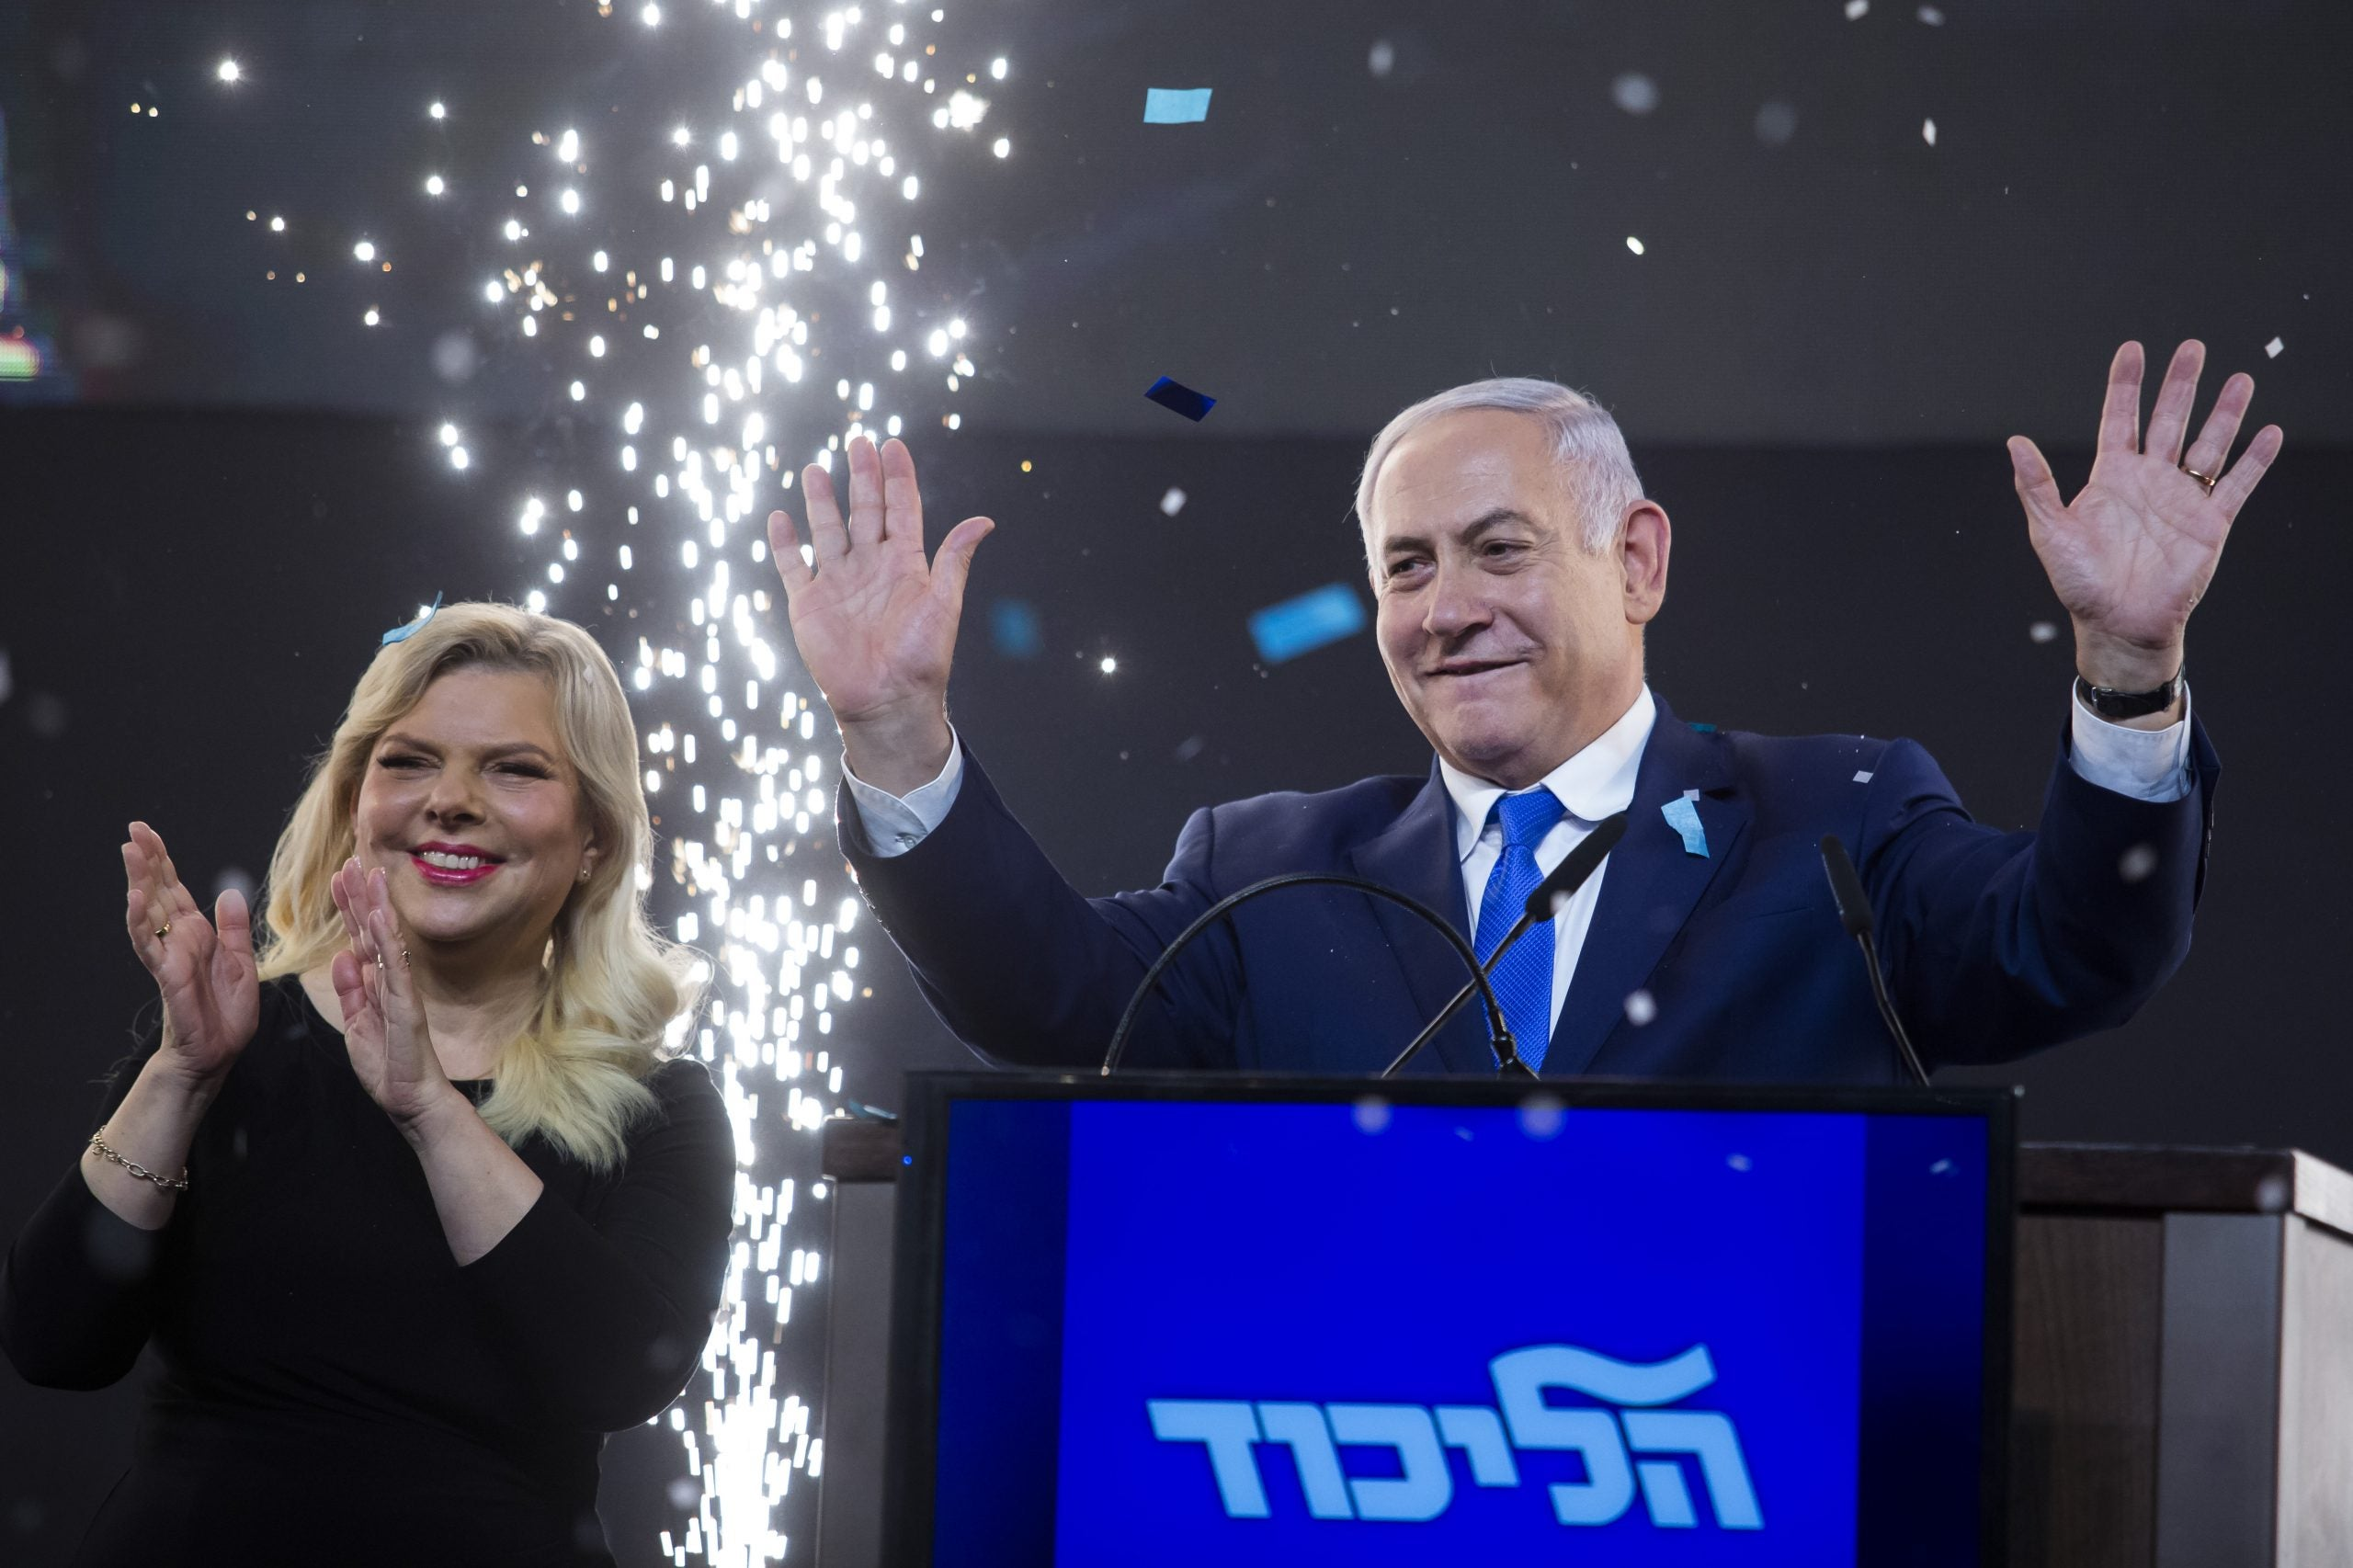 How Israel's Binyamin Netanyahu defied corruption scandals to win another term as PM